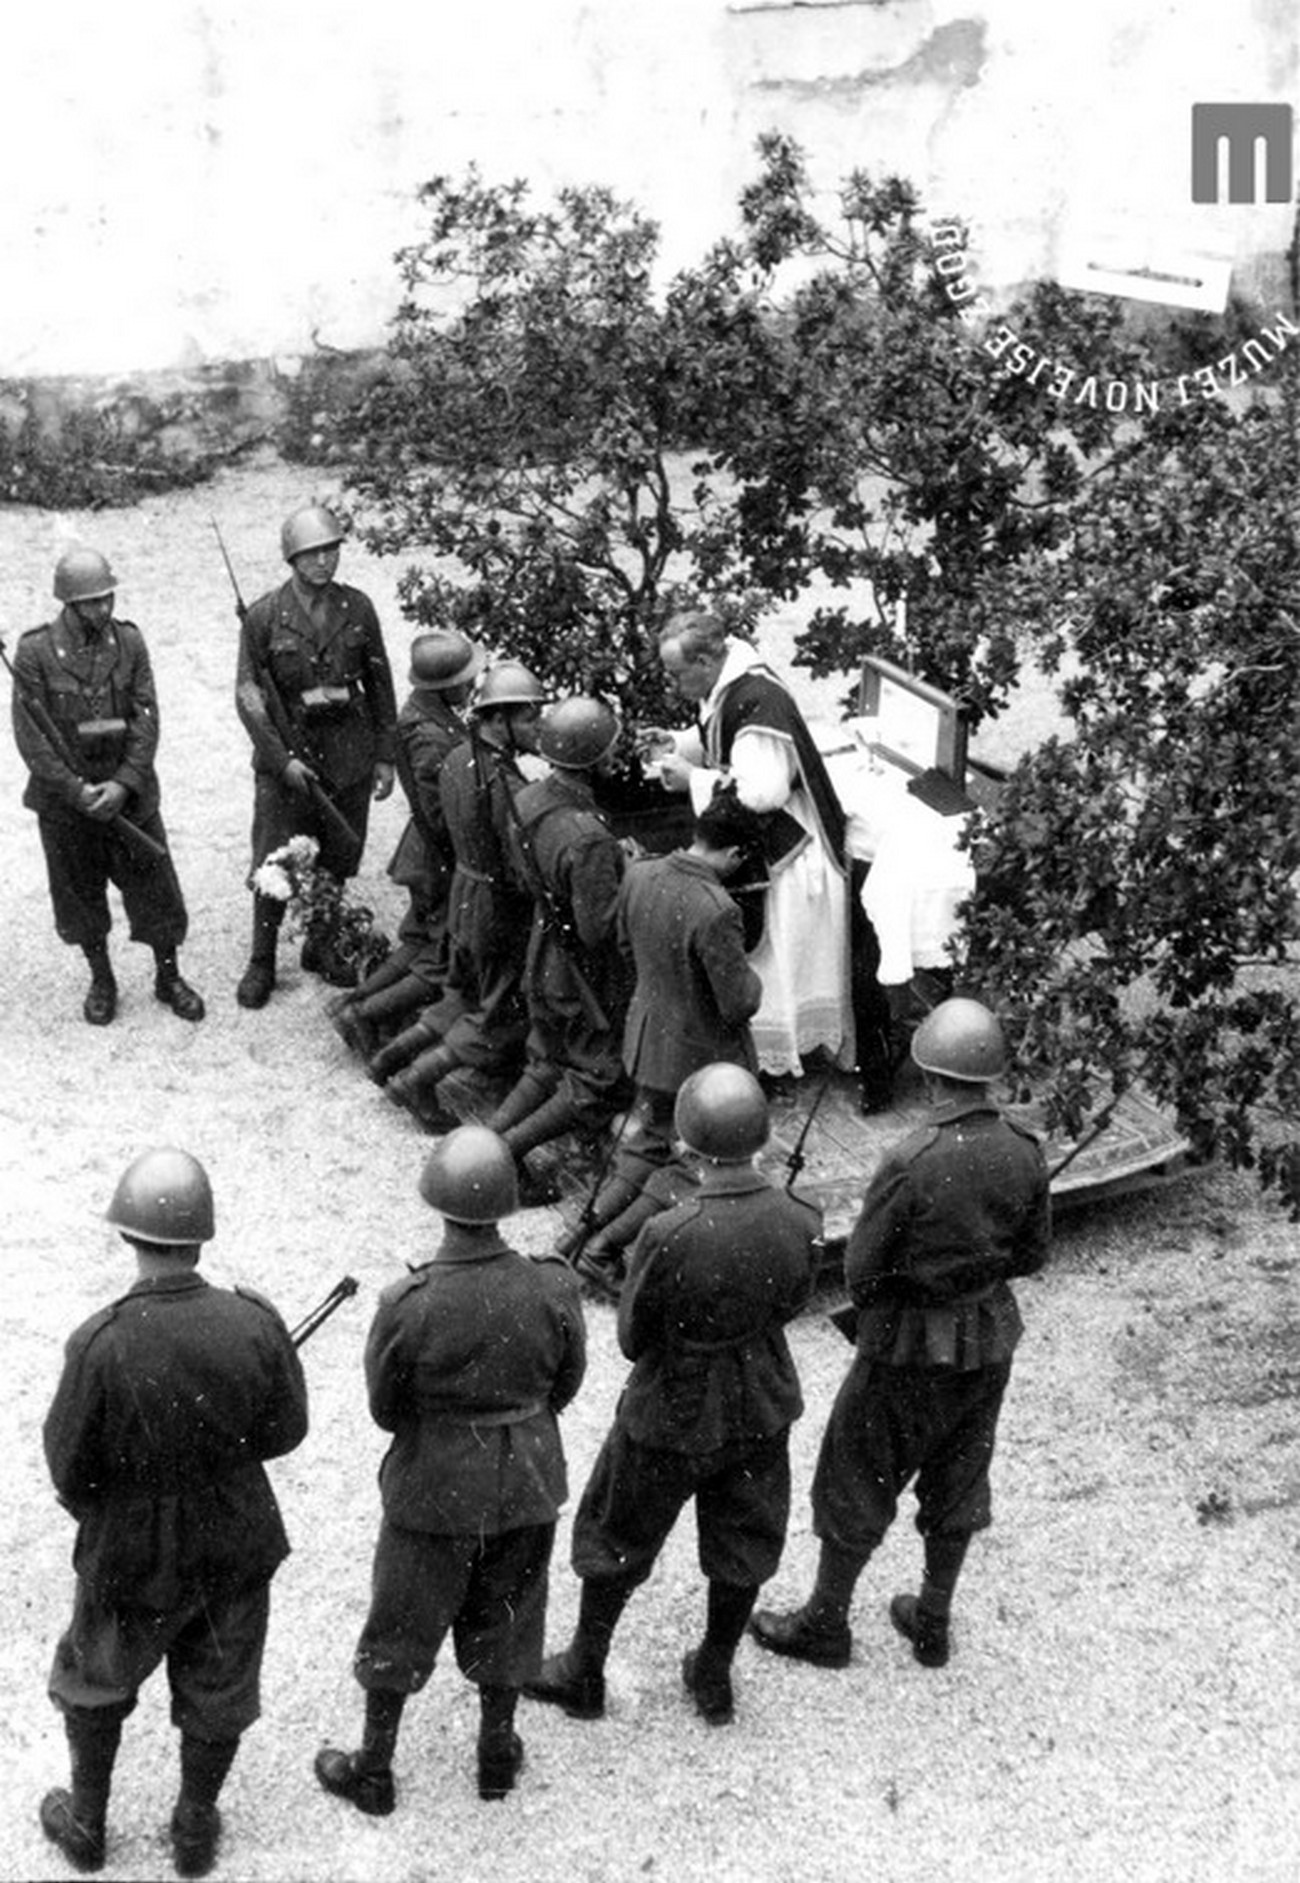 Italian soldiers took part in religious ceremonies in the occupied areas. Wearing full military gear, they attended the Easter Day Mass alongside the local population on 13 April. In the photograph, we can see Italian soldiers receiving Holy Communion in Vrhnika. MNZS.